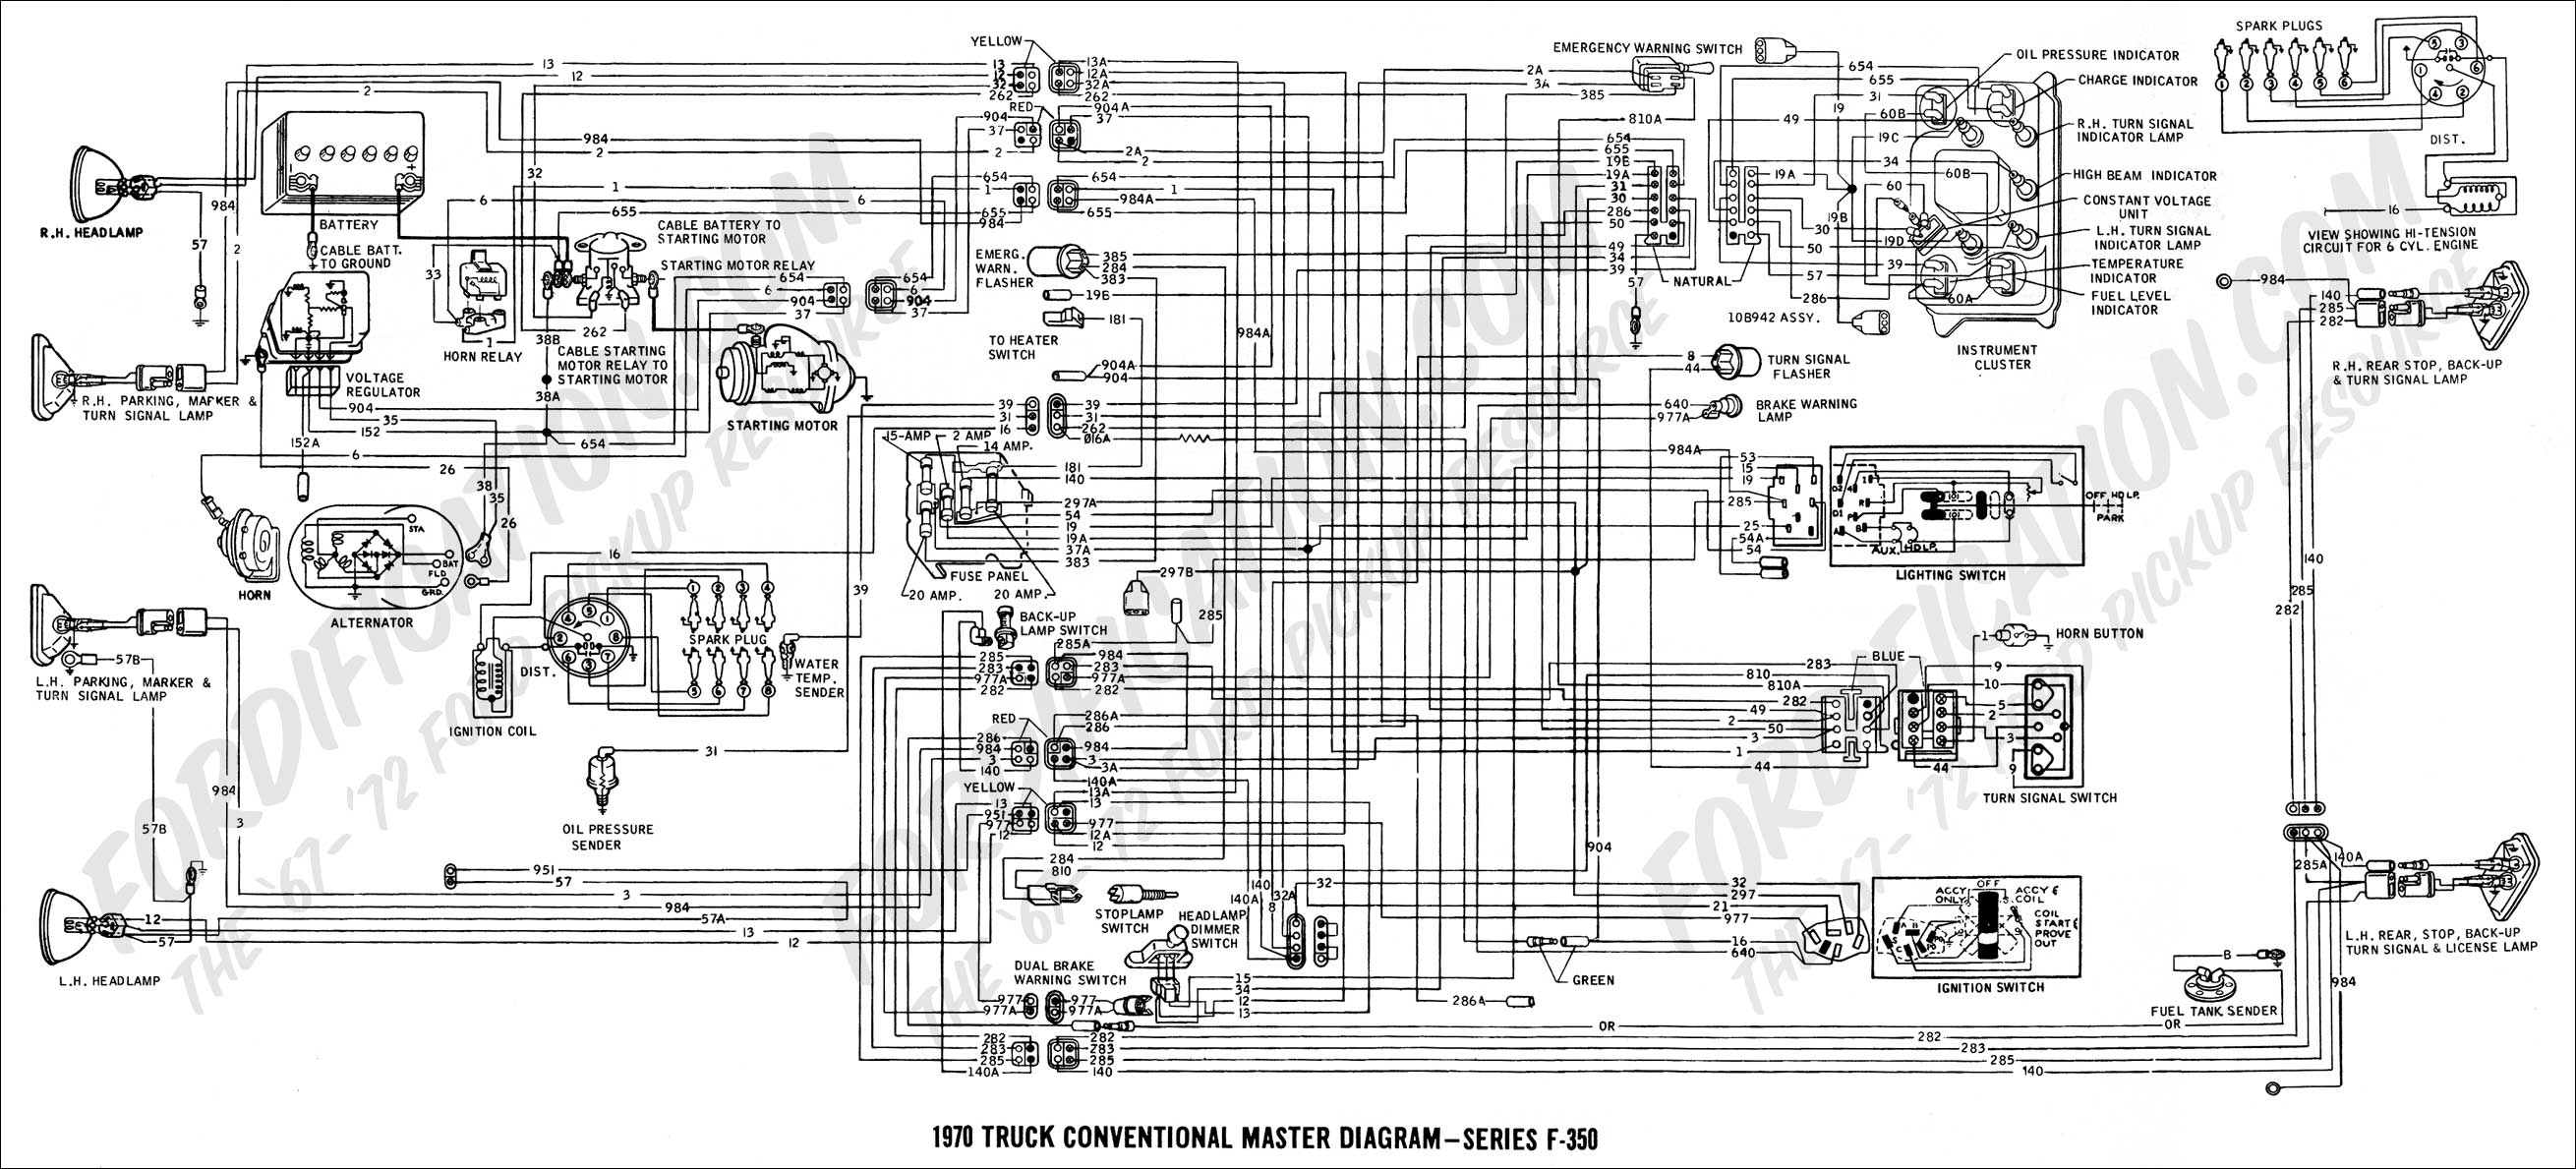 wiring diagram 70F350_master ford truck technical drawings and schematics section h wiring diagram for communication at crackthecode.co